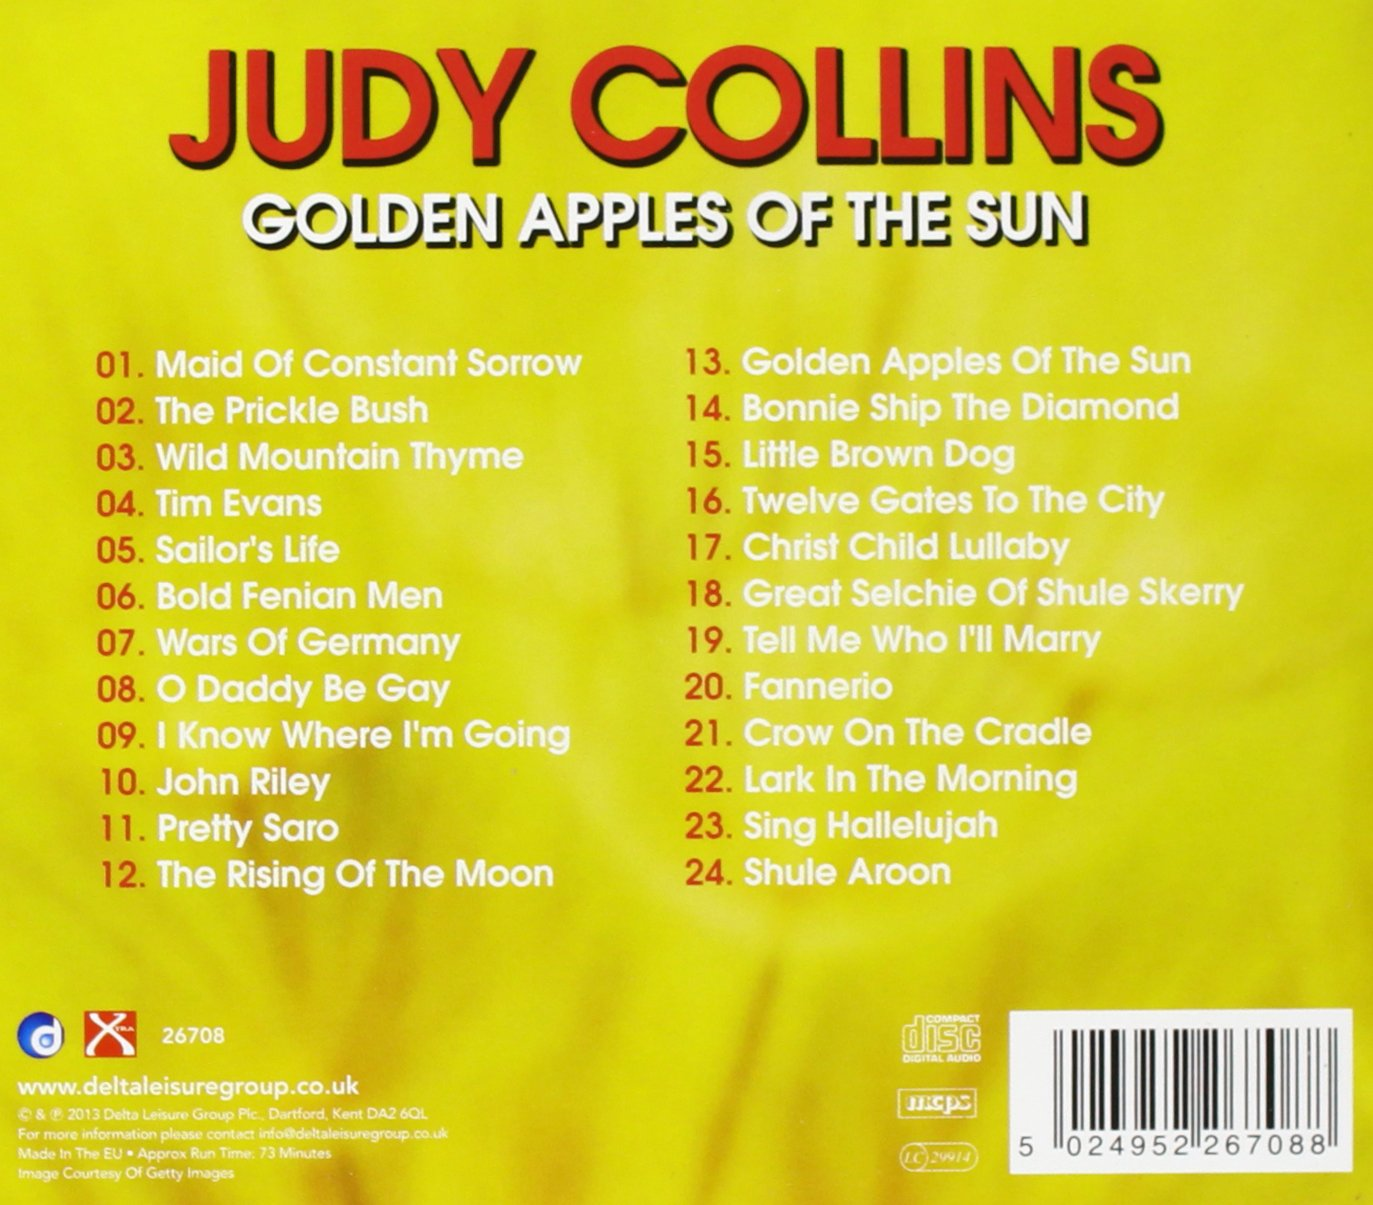 THE GOLDEN APPLES OF THE SUN PDF DOWNLOAD